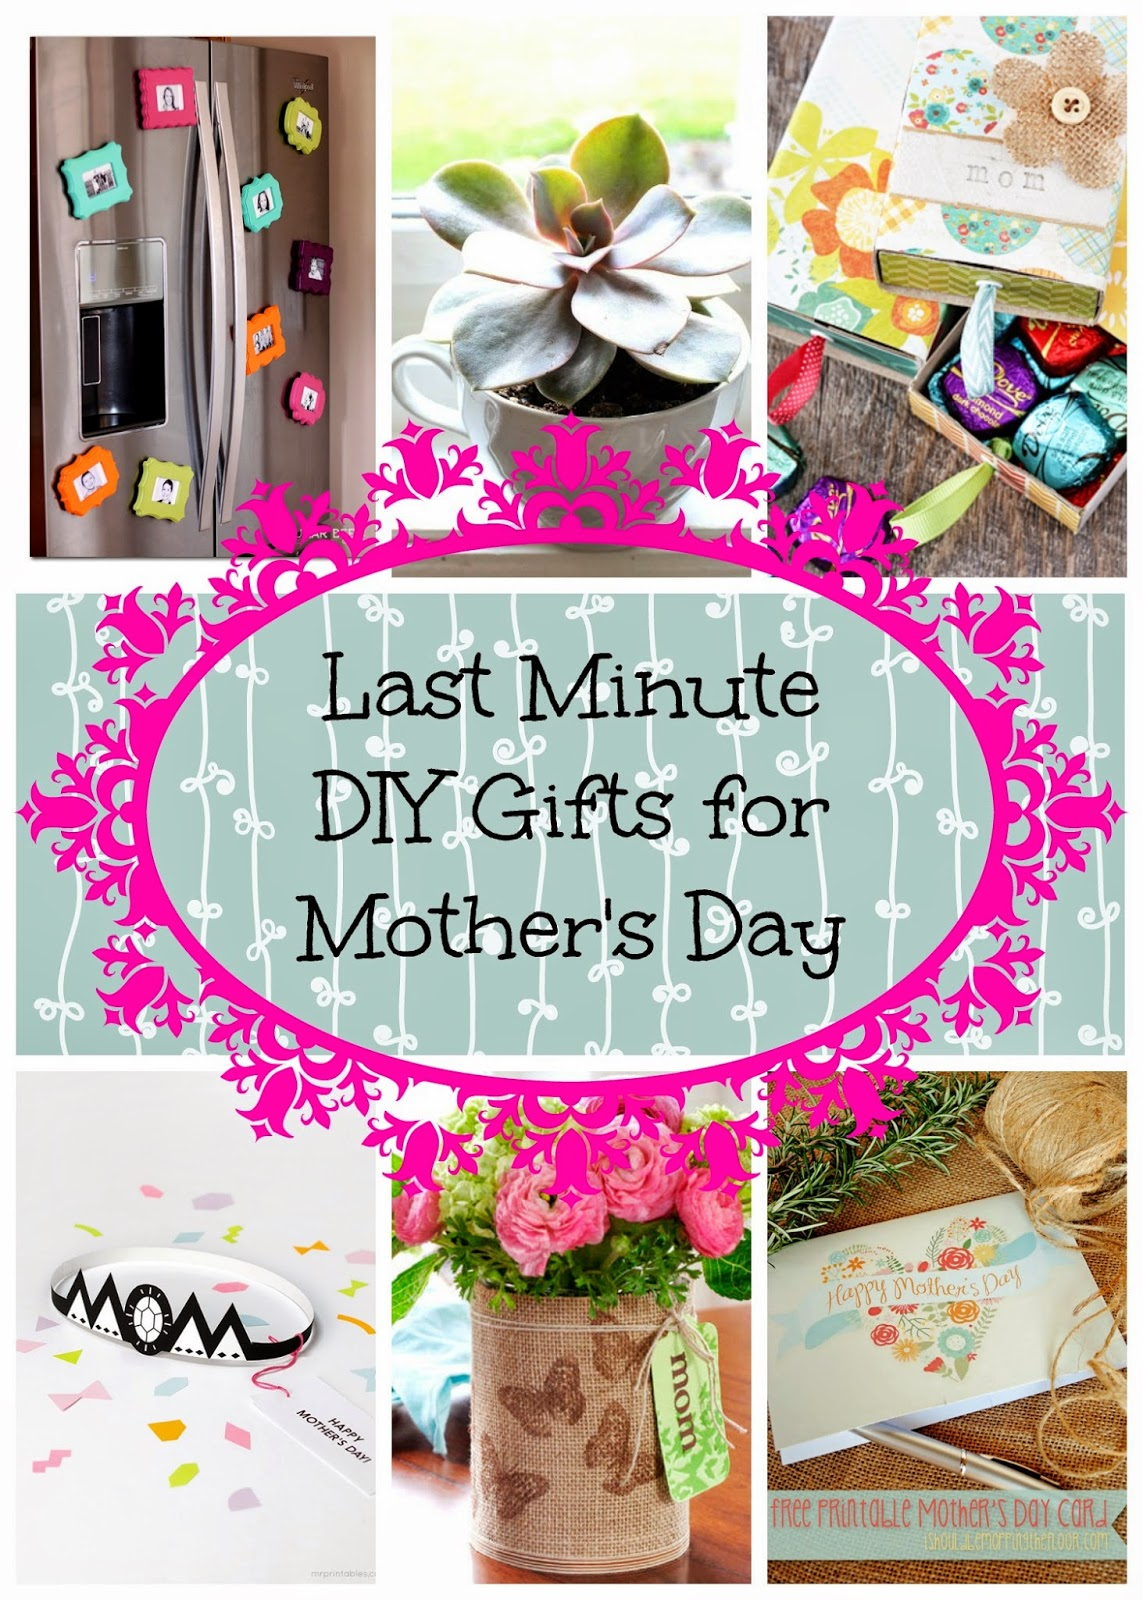 Ambrosia S Creations Diy Last Minute Mother S Day Gift